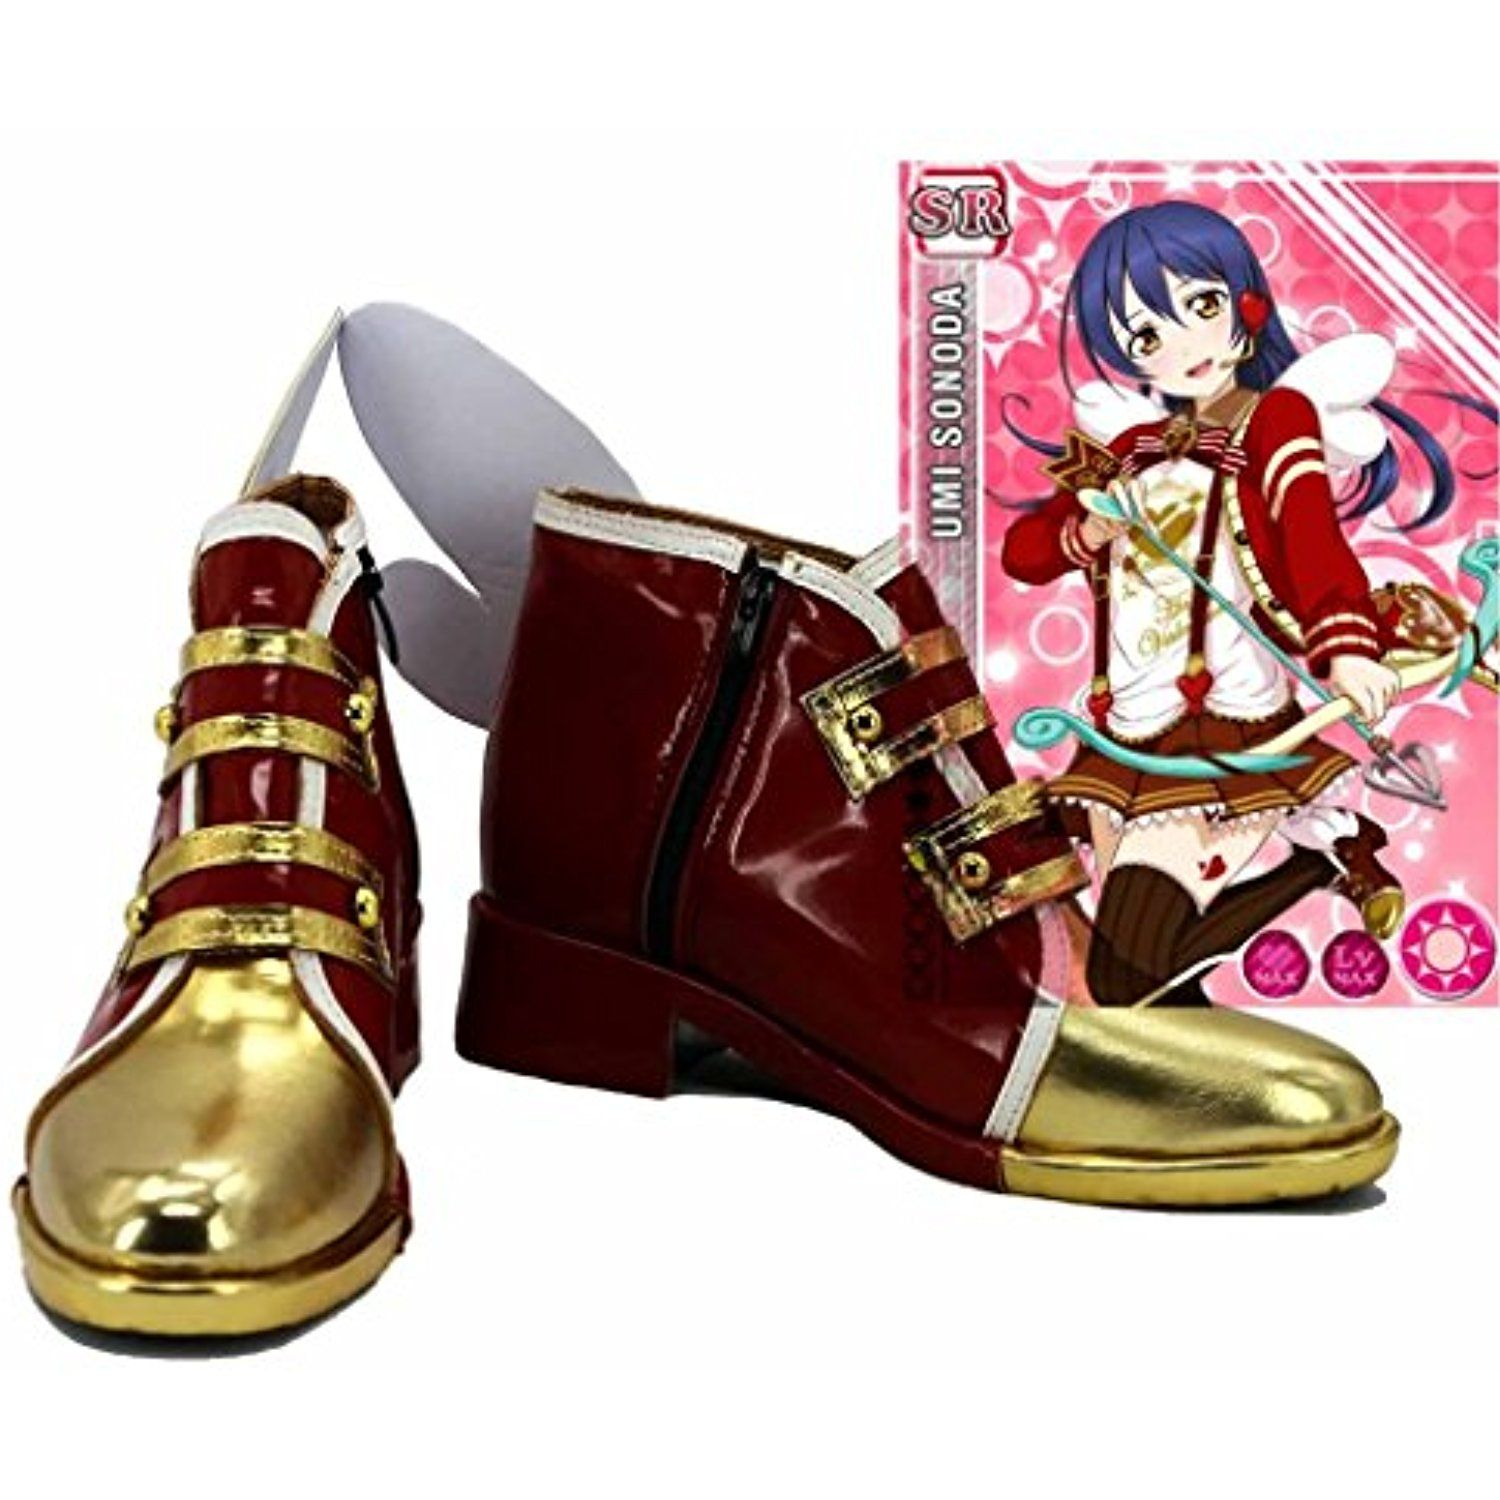 LoveLive! Love Live Happy Valentine's Day Chocolate Sonoda Umi Cosplay Shoes Boots Custom Made